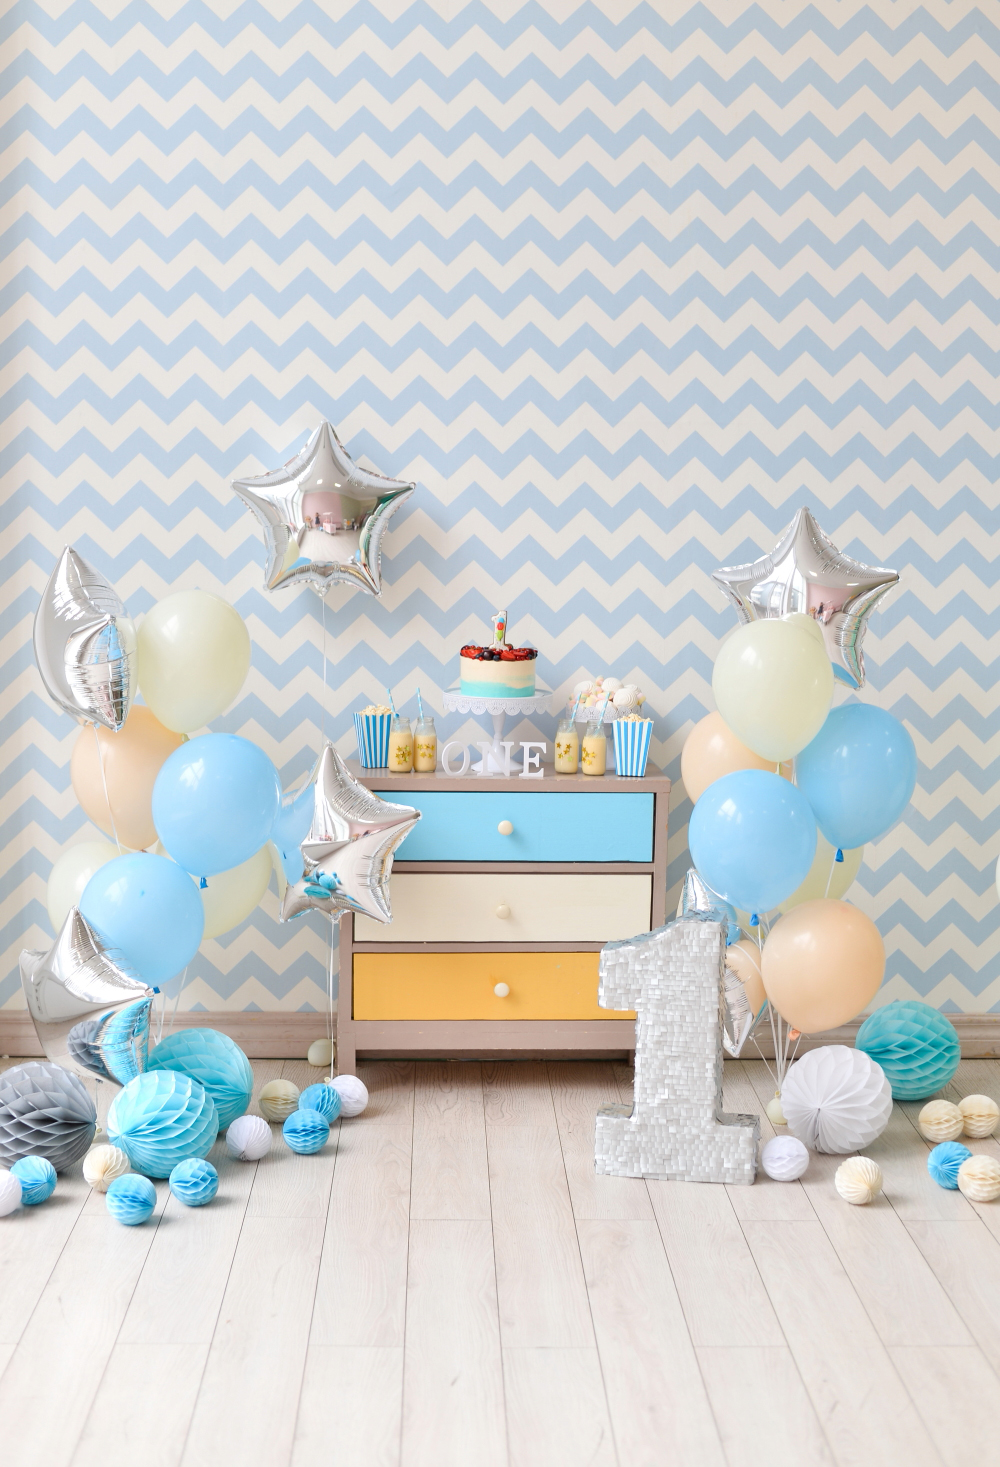 Interior newborn photo studio backdrop background vinyl, baby children birthday party photography backdrops 200x300cm vinyl floral flower newborn backdrops cartoon unicorn photography background studio photo props 5x3ft